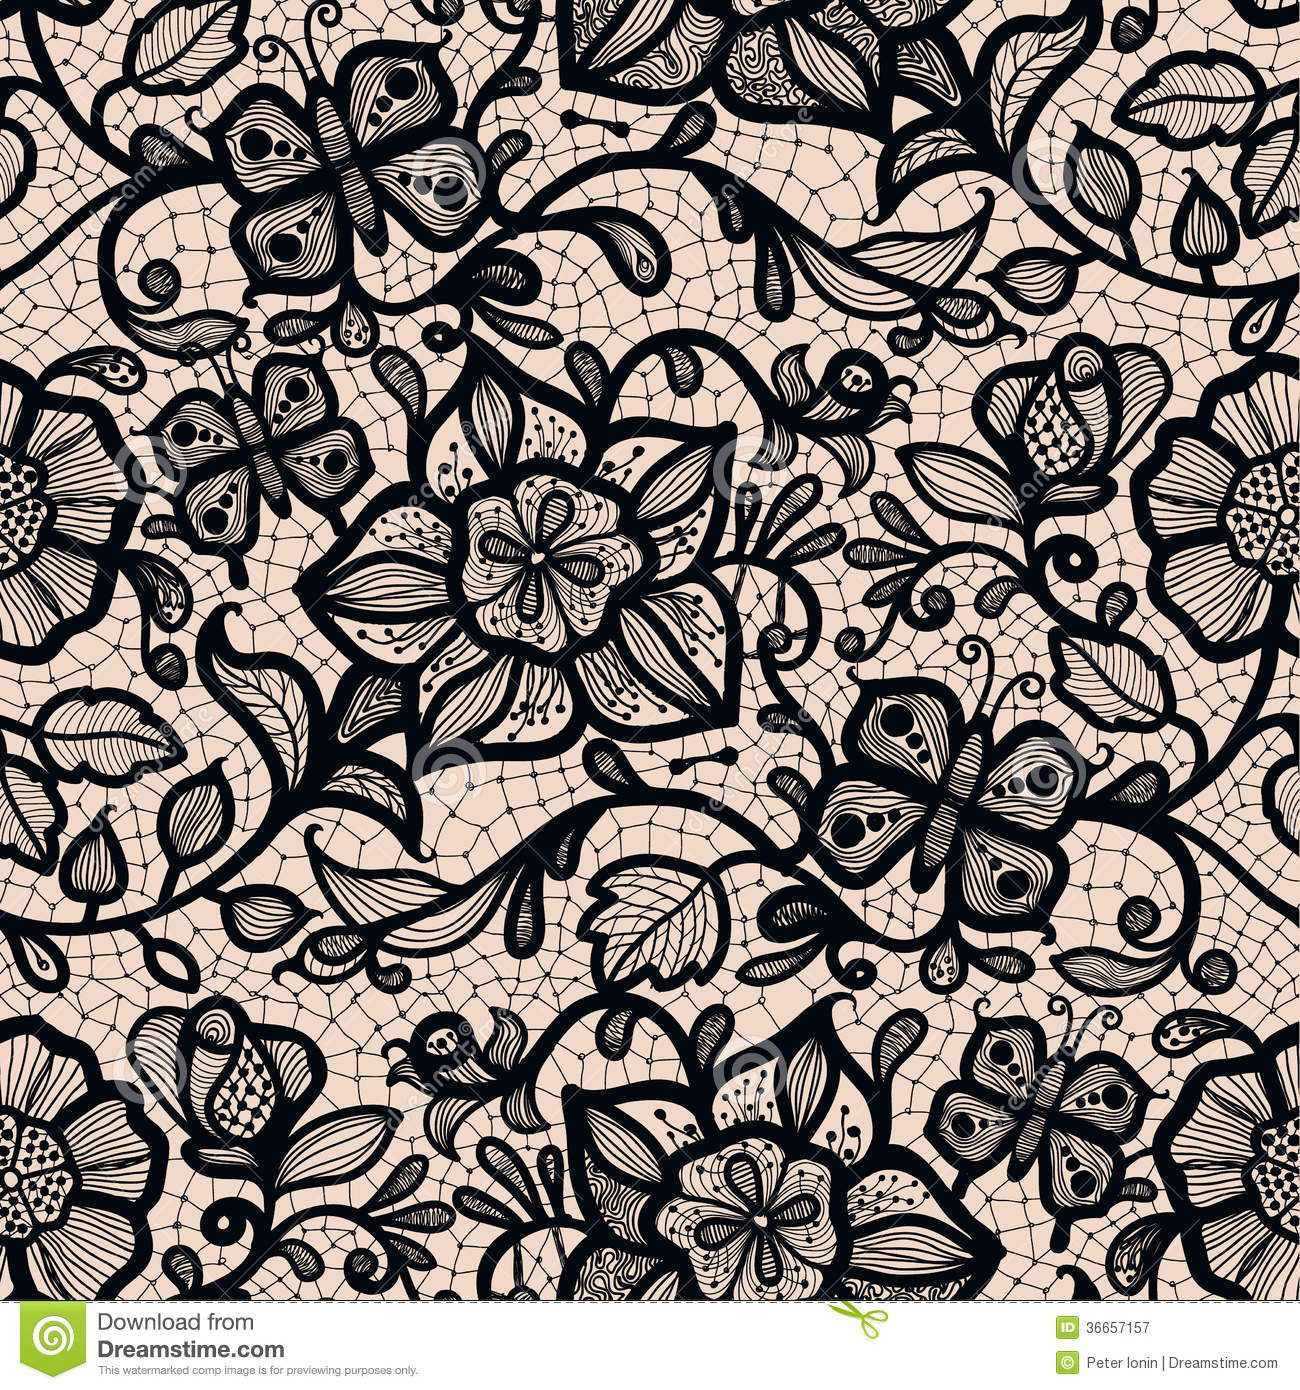 Abstract Seamless Lace Pattern With Flowers And HD Wallpapers Download Free Images Wallpaper [1000image.com]